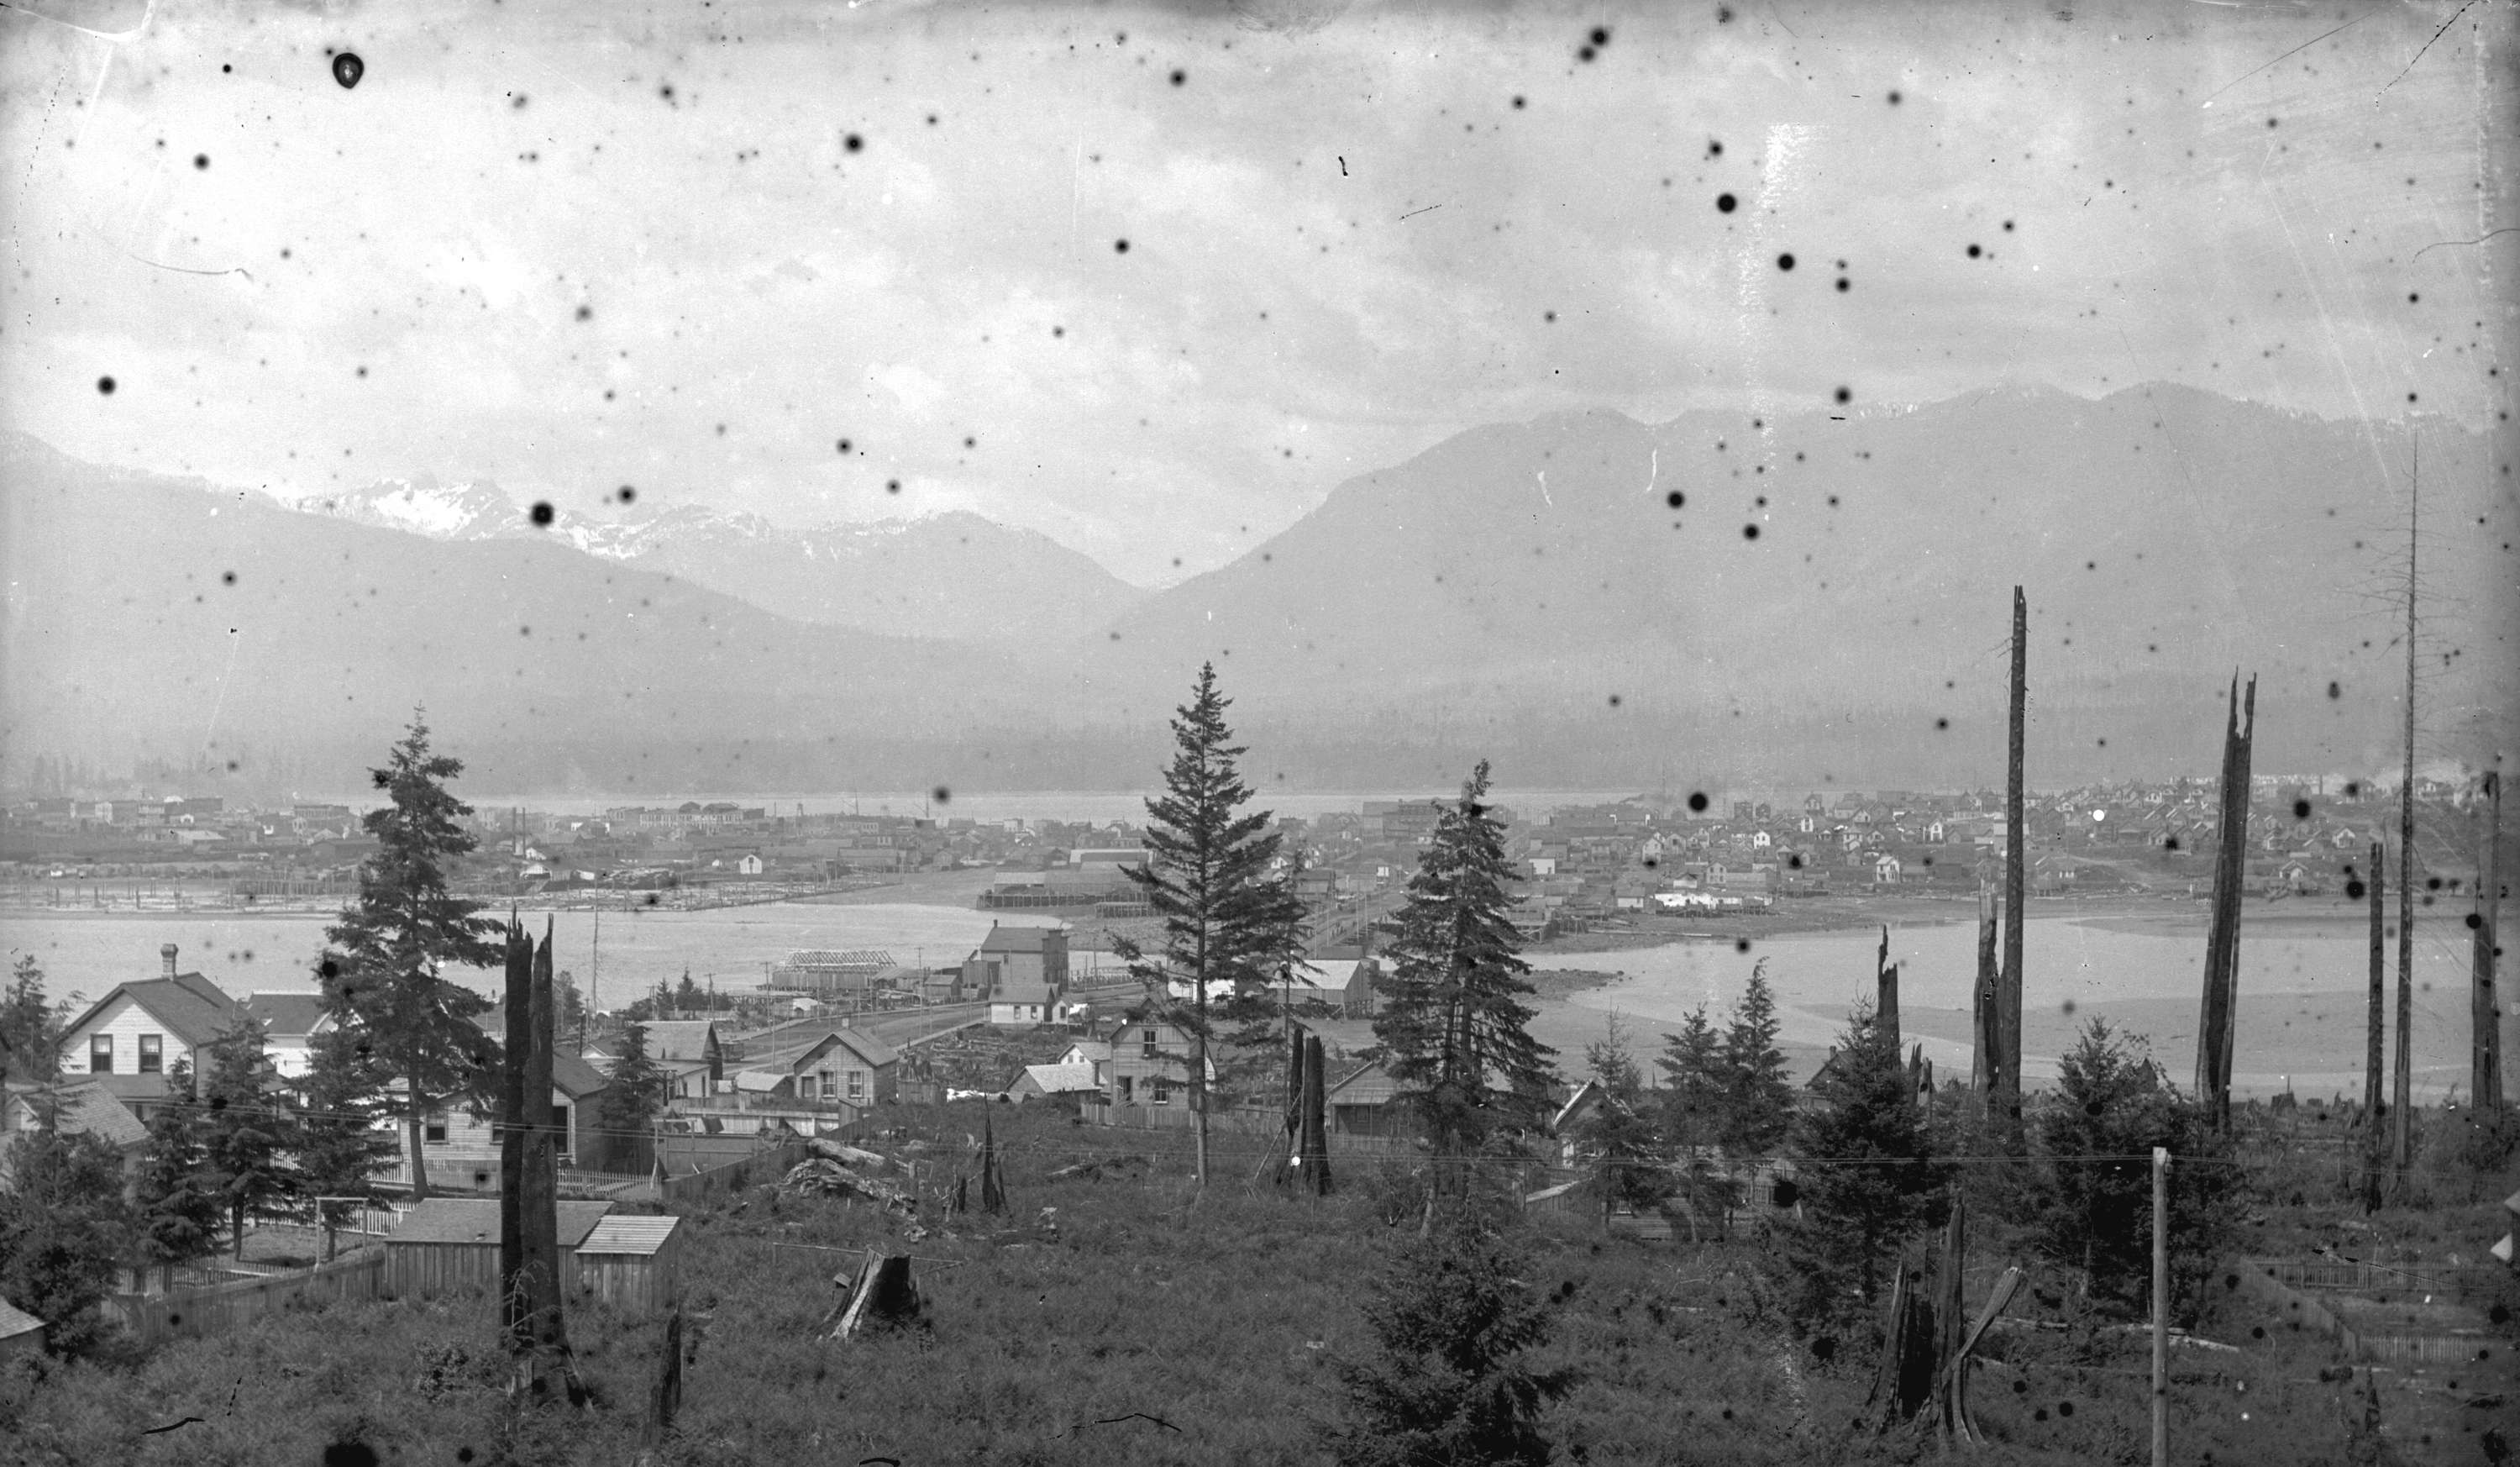 1200px version of MountPleasant-1890-MtPleasant.jpg